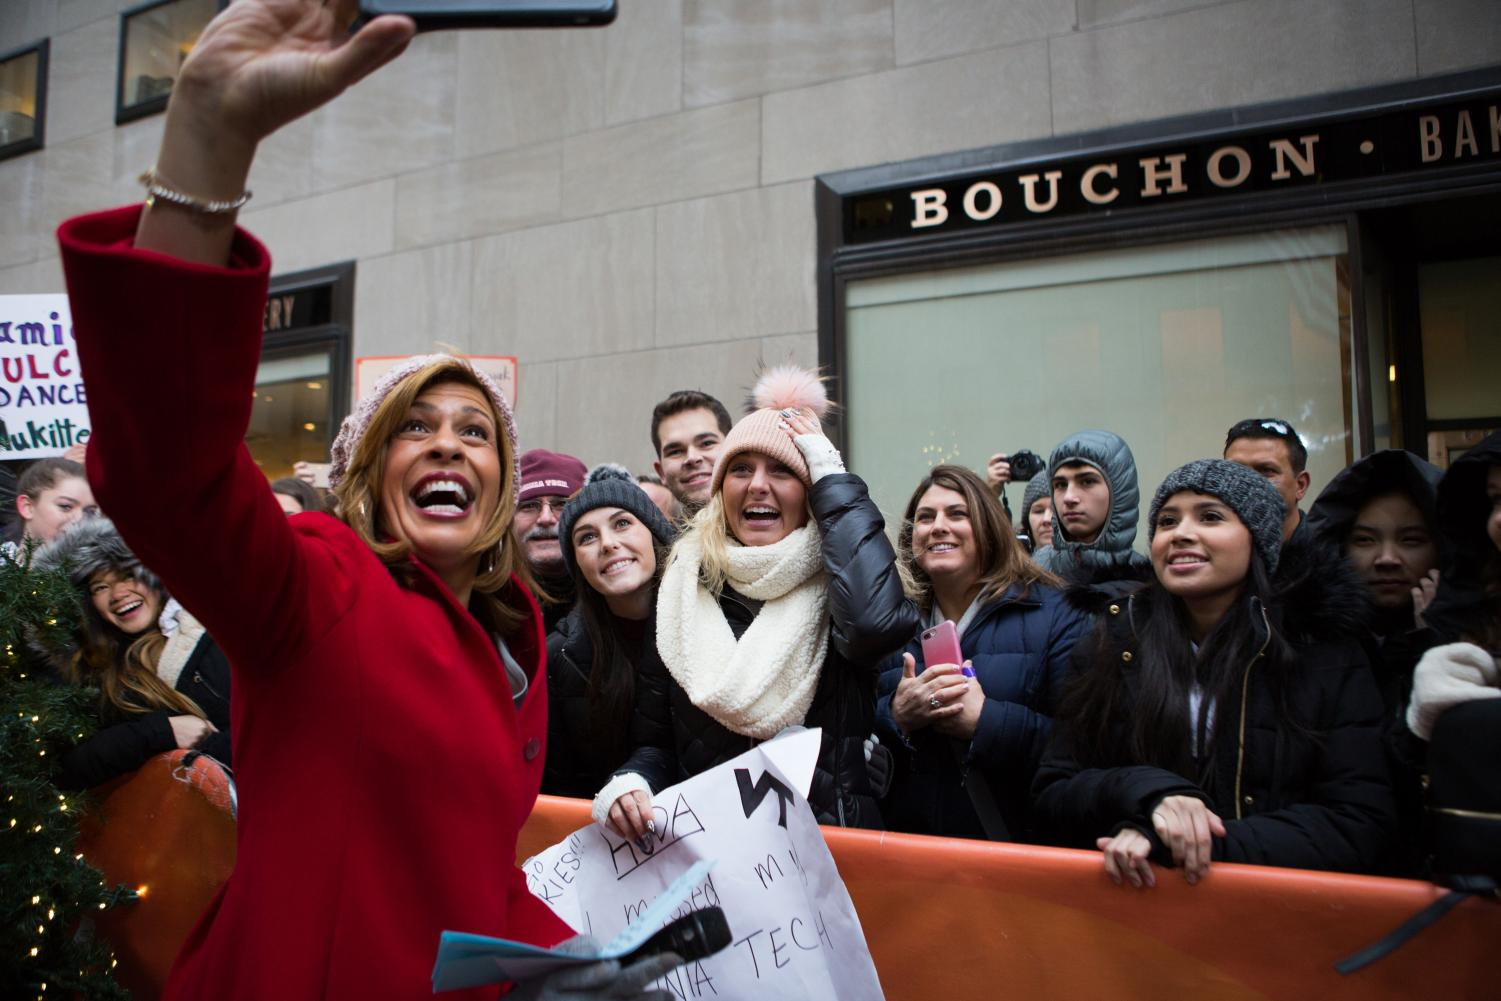 NBC says Hoda Kotb to replace Lauer as 'Today' co-anchor